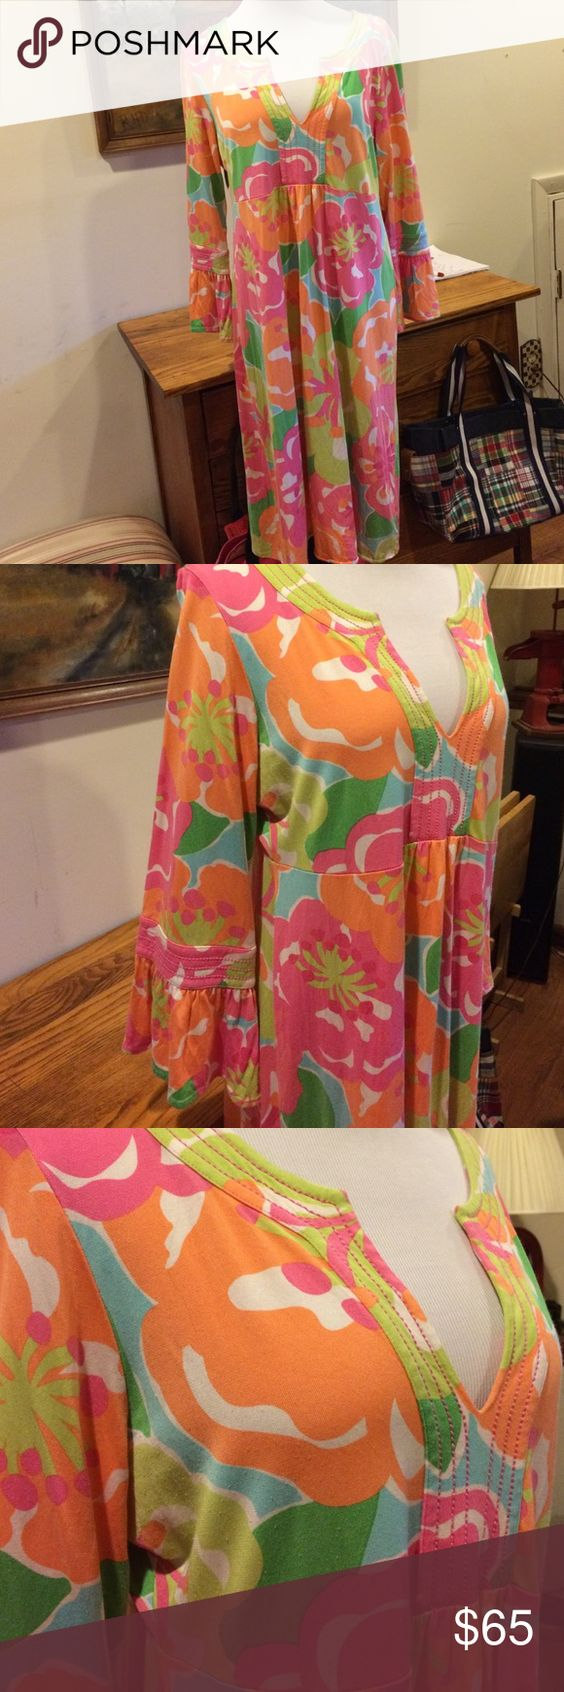 Lilly Pulitzer Dress size XL. Lilly Pulitzer Dress size XL.  Cute bright fun pattern.  73% silk 27% cotton blend.  3/4 length sleeves with ruffle edge.  .  Great condition. Lilly Pulitzer Dresses Midi